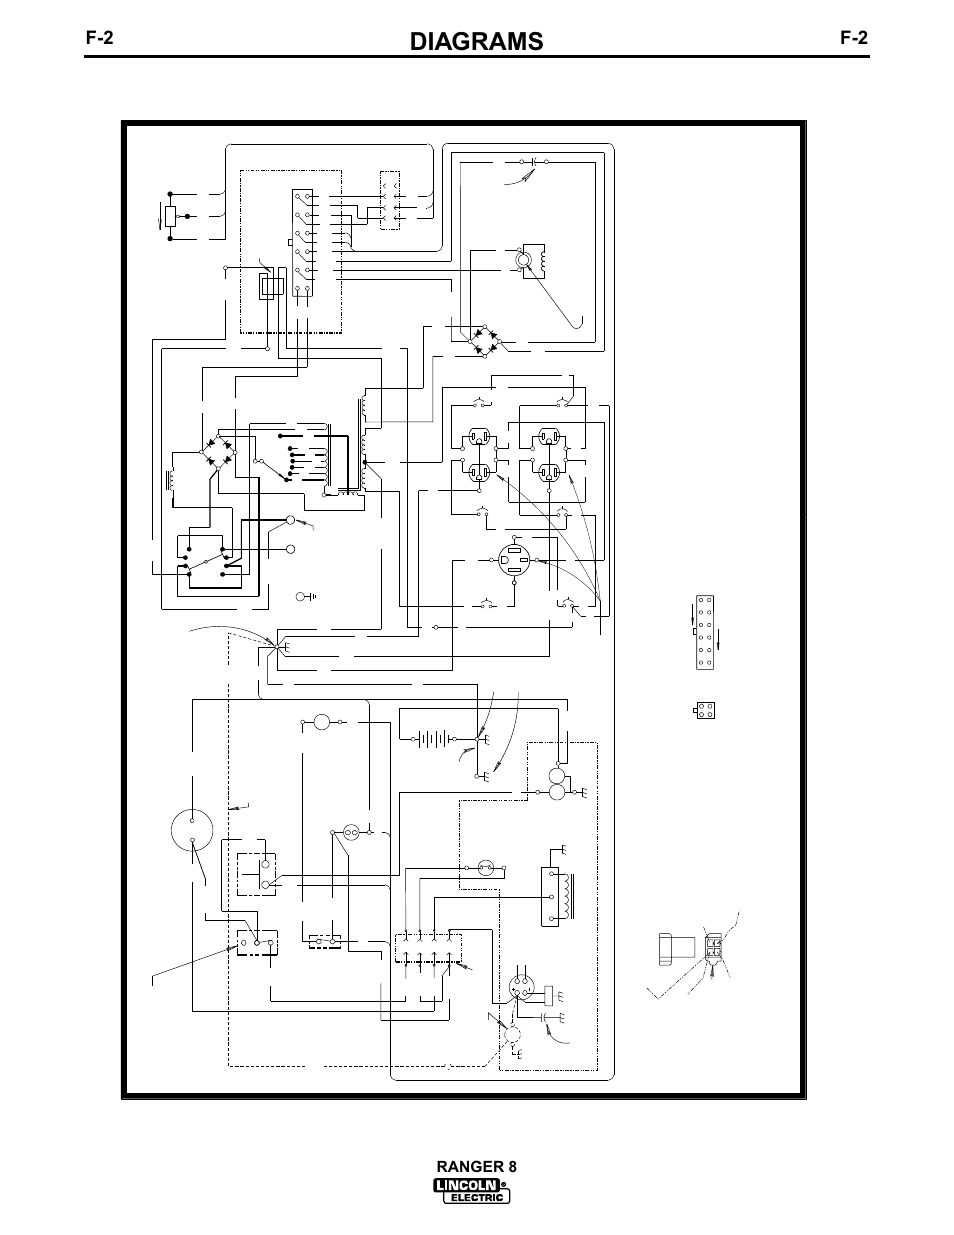 medium resolution of diagrams ranger 8 electrical symbols per e1537 lincoln electric im510 ranger 8 user manual page 31 42